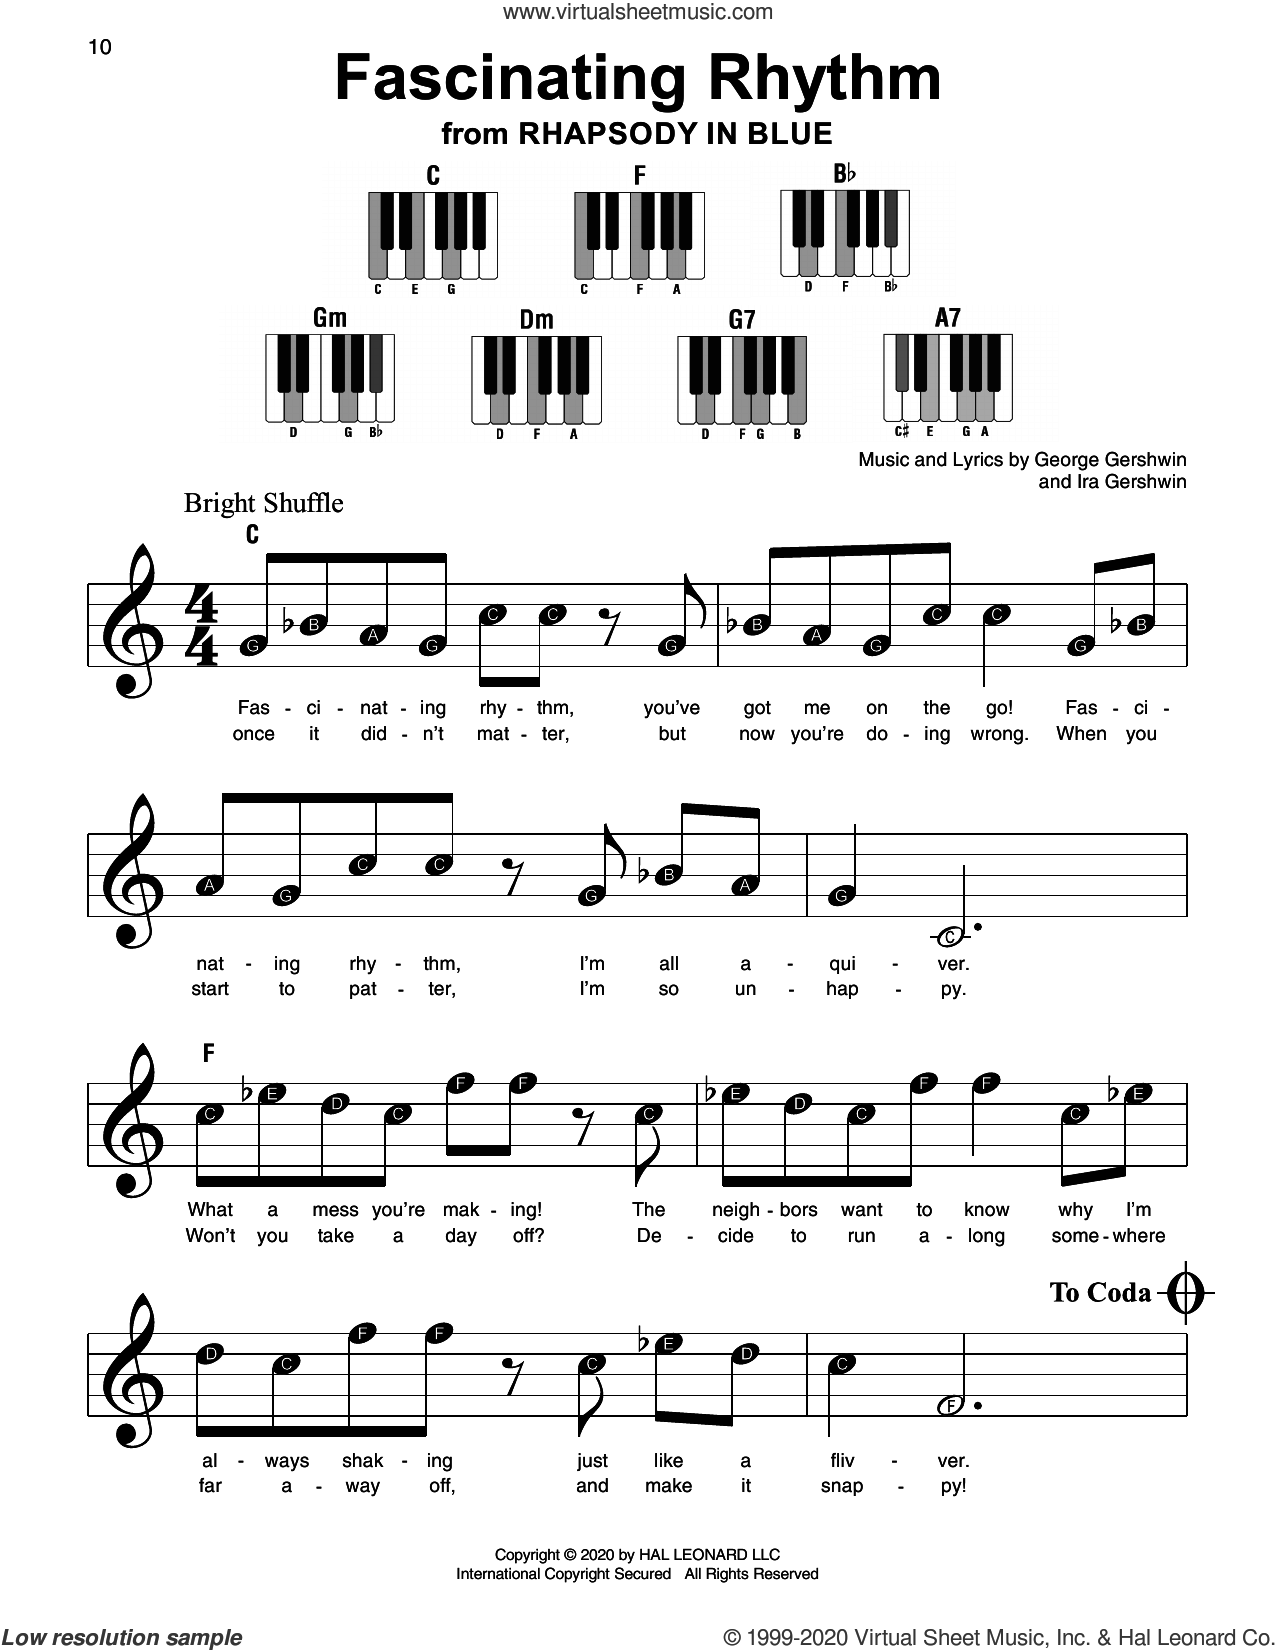 Fascinating Rhythm (from Rhapsody in Blue) sheet music for piano solo by George Gershwin, George Gershwin & Ira Gershwin and Ira Gershwin, beginner skill level